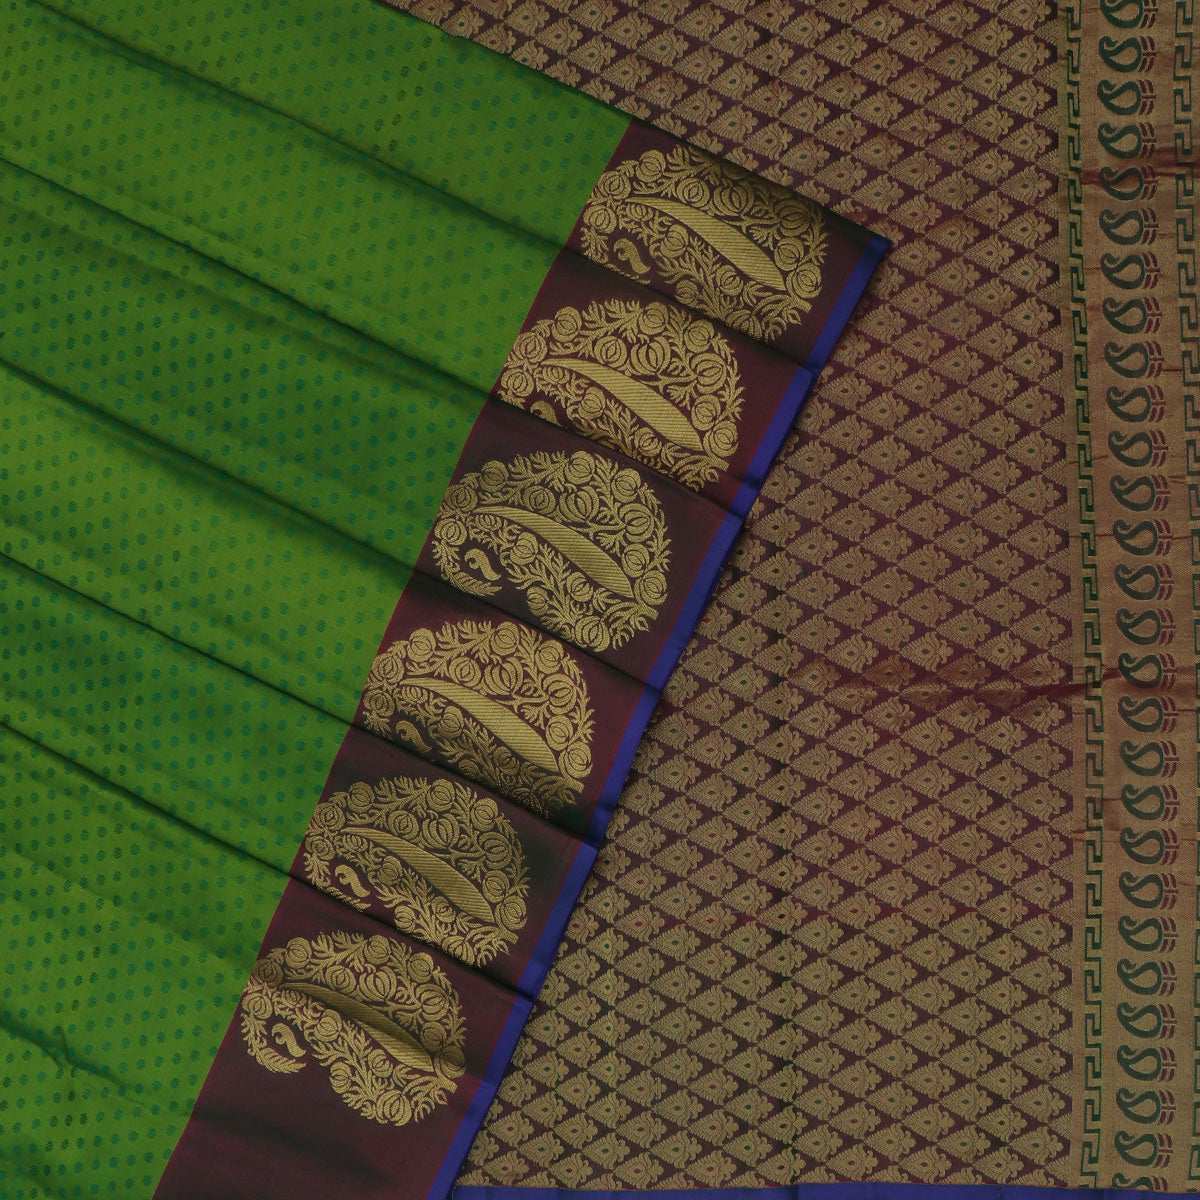 Kanjivaram Silk Saree Light Green and Purple with Mango Zari border